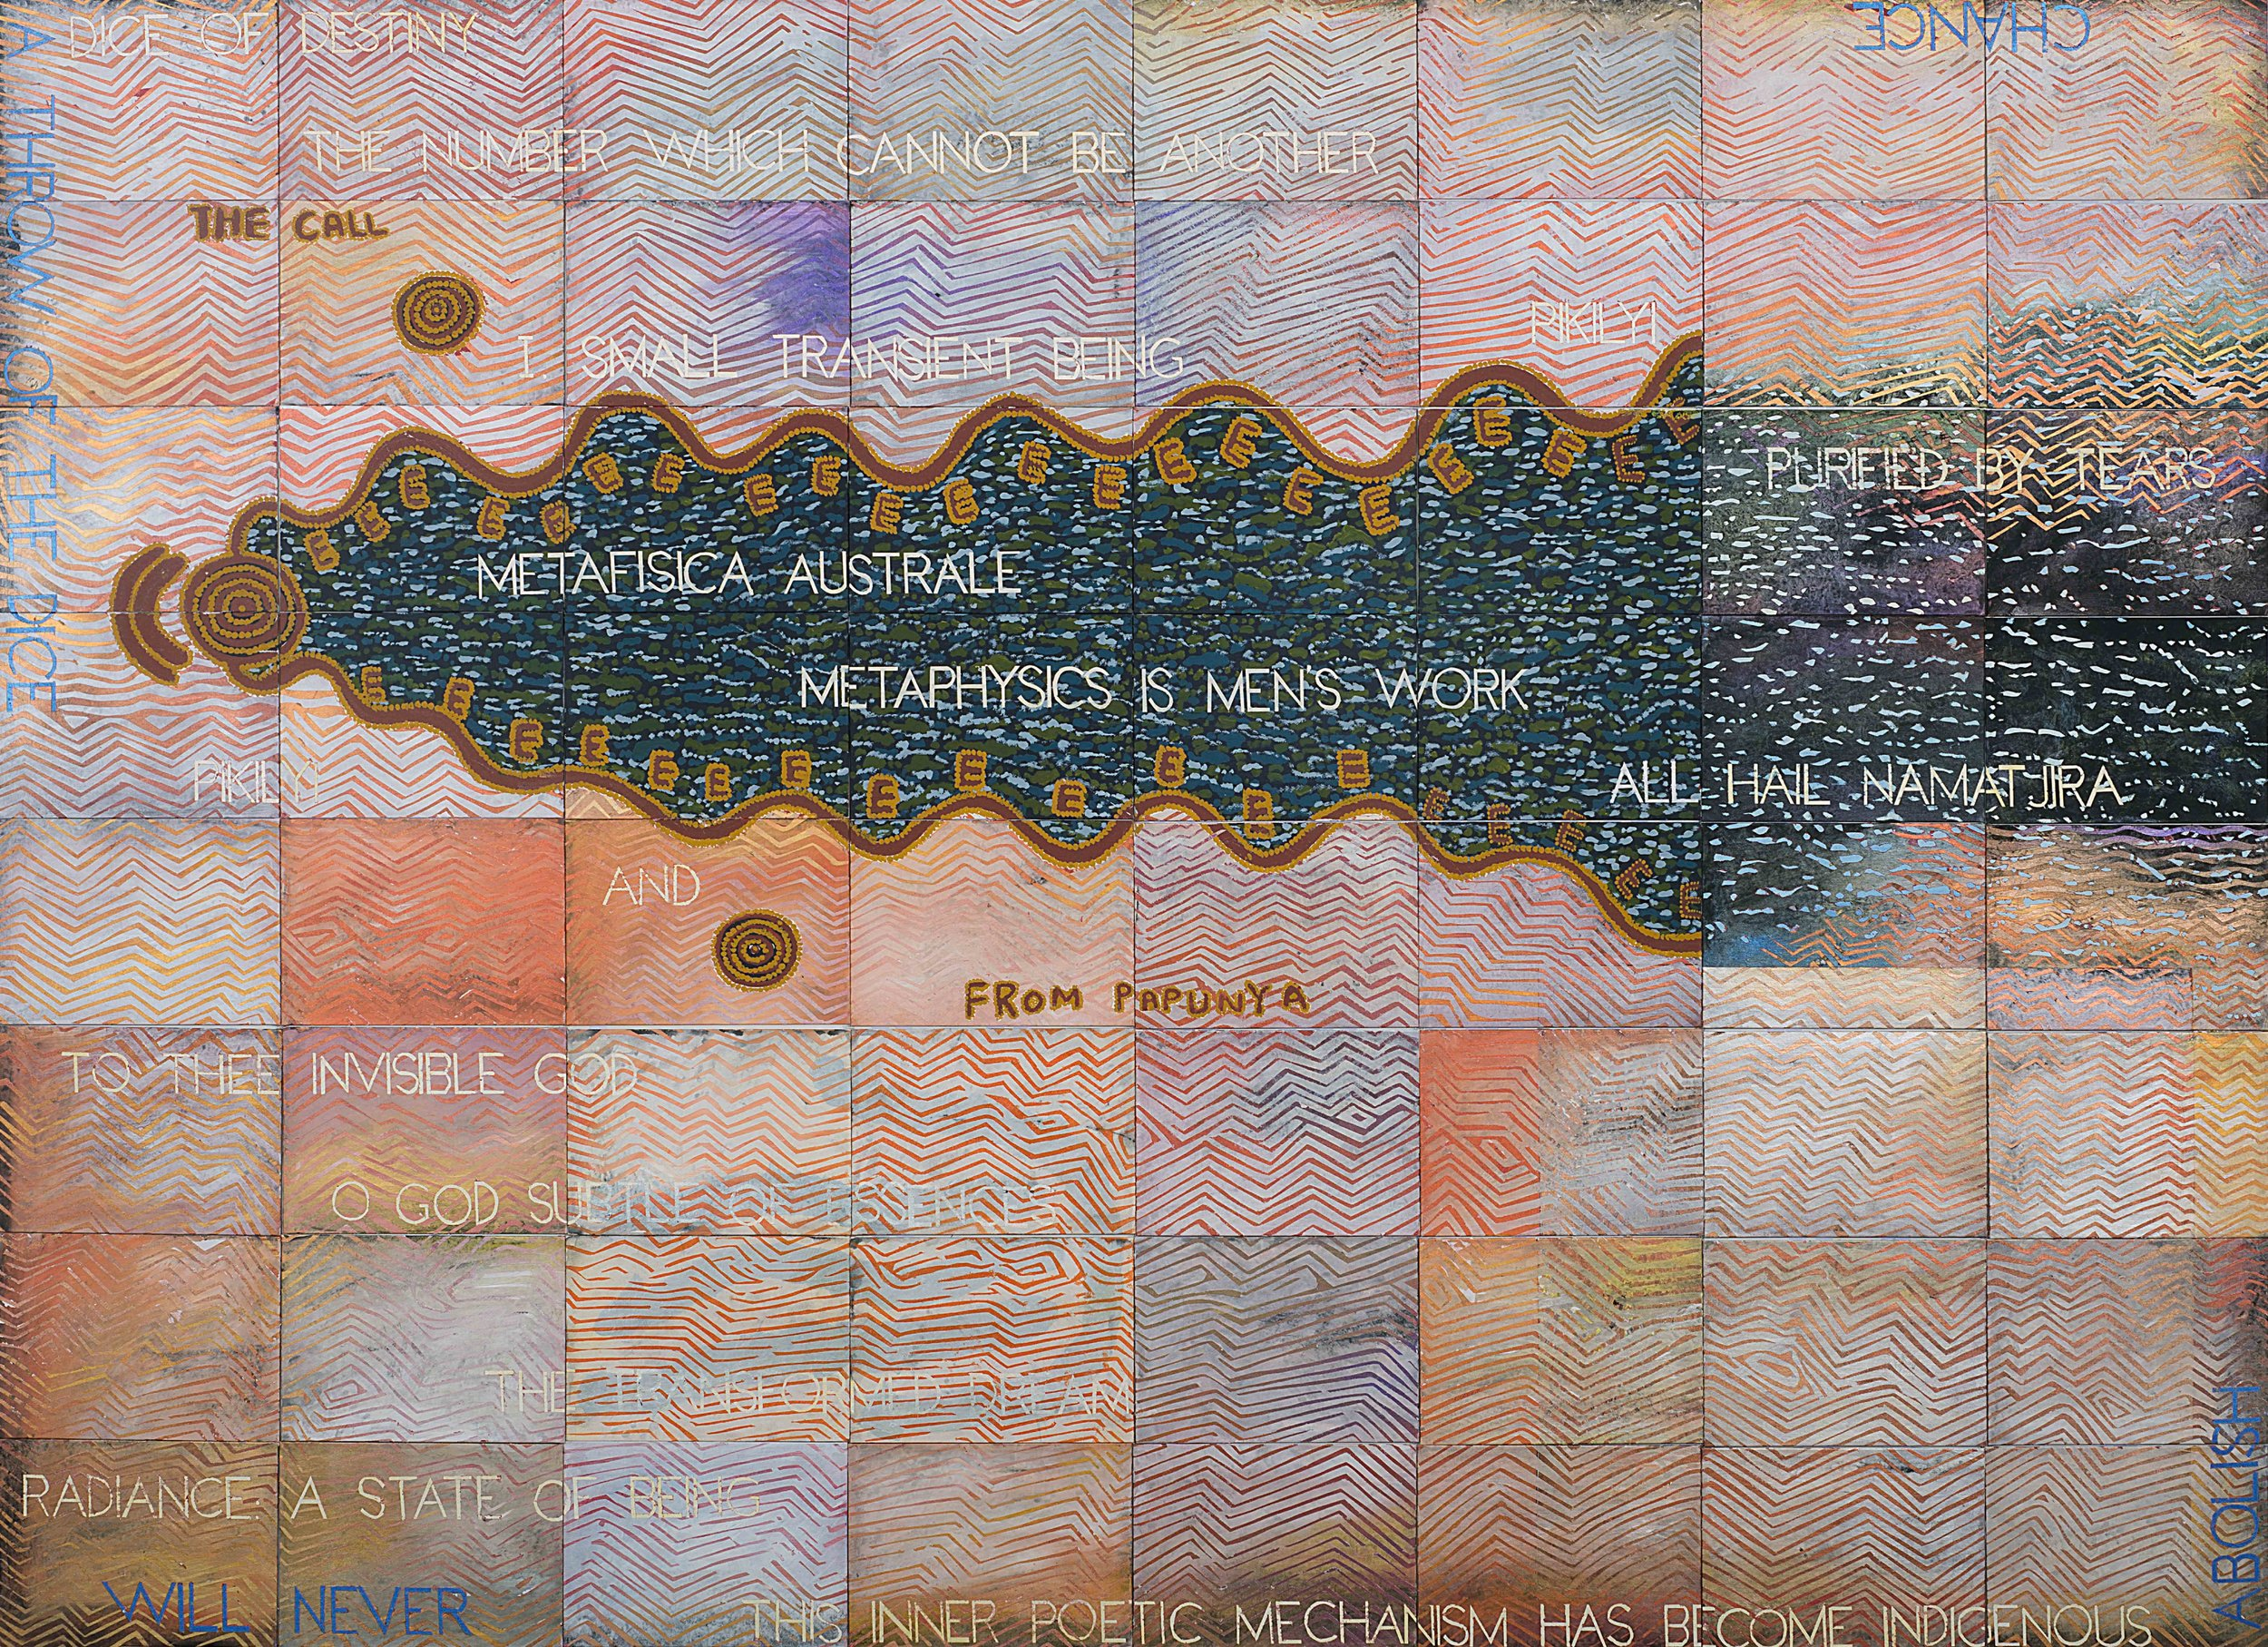 The Call From Papunya, 2018